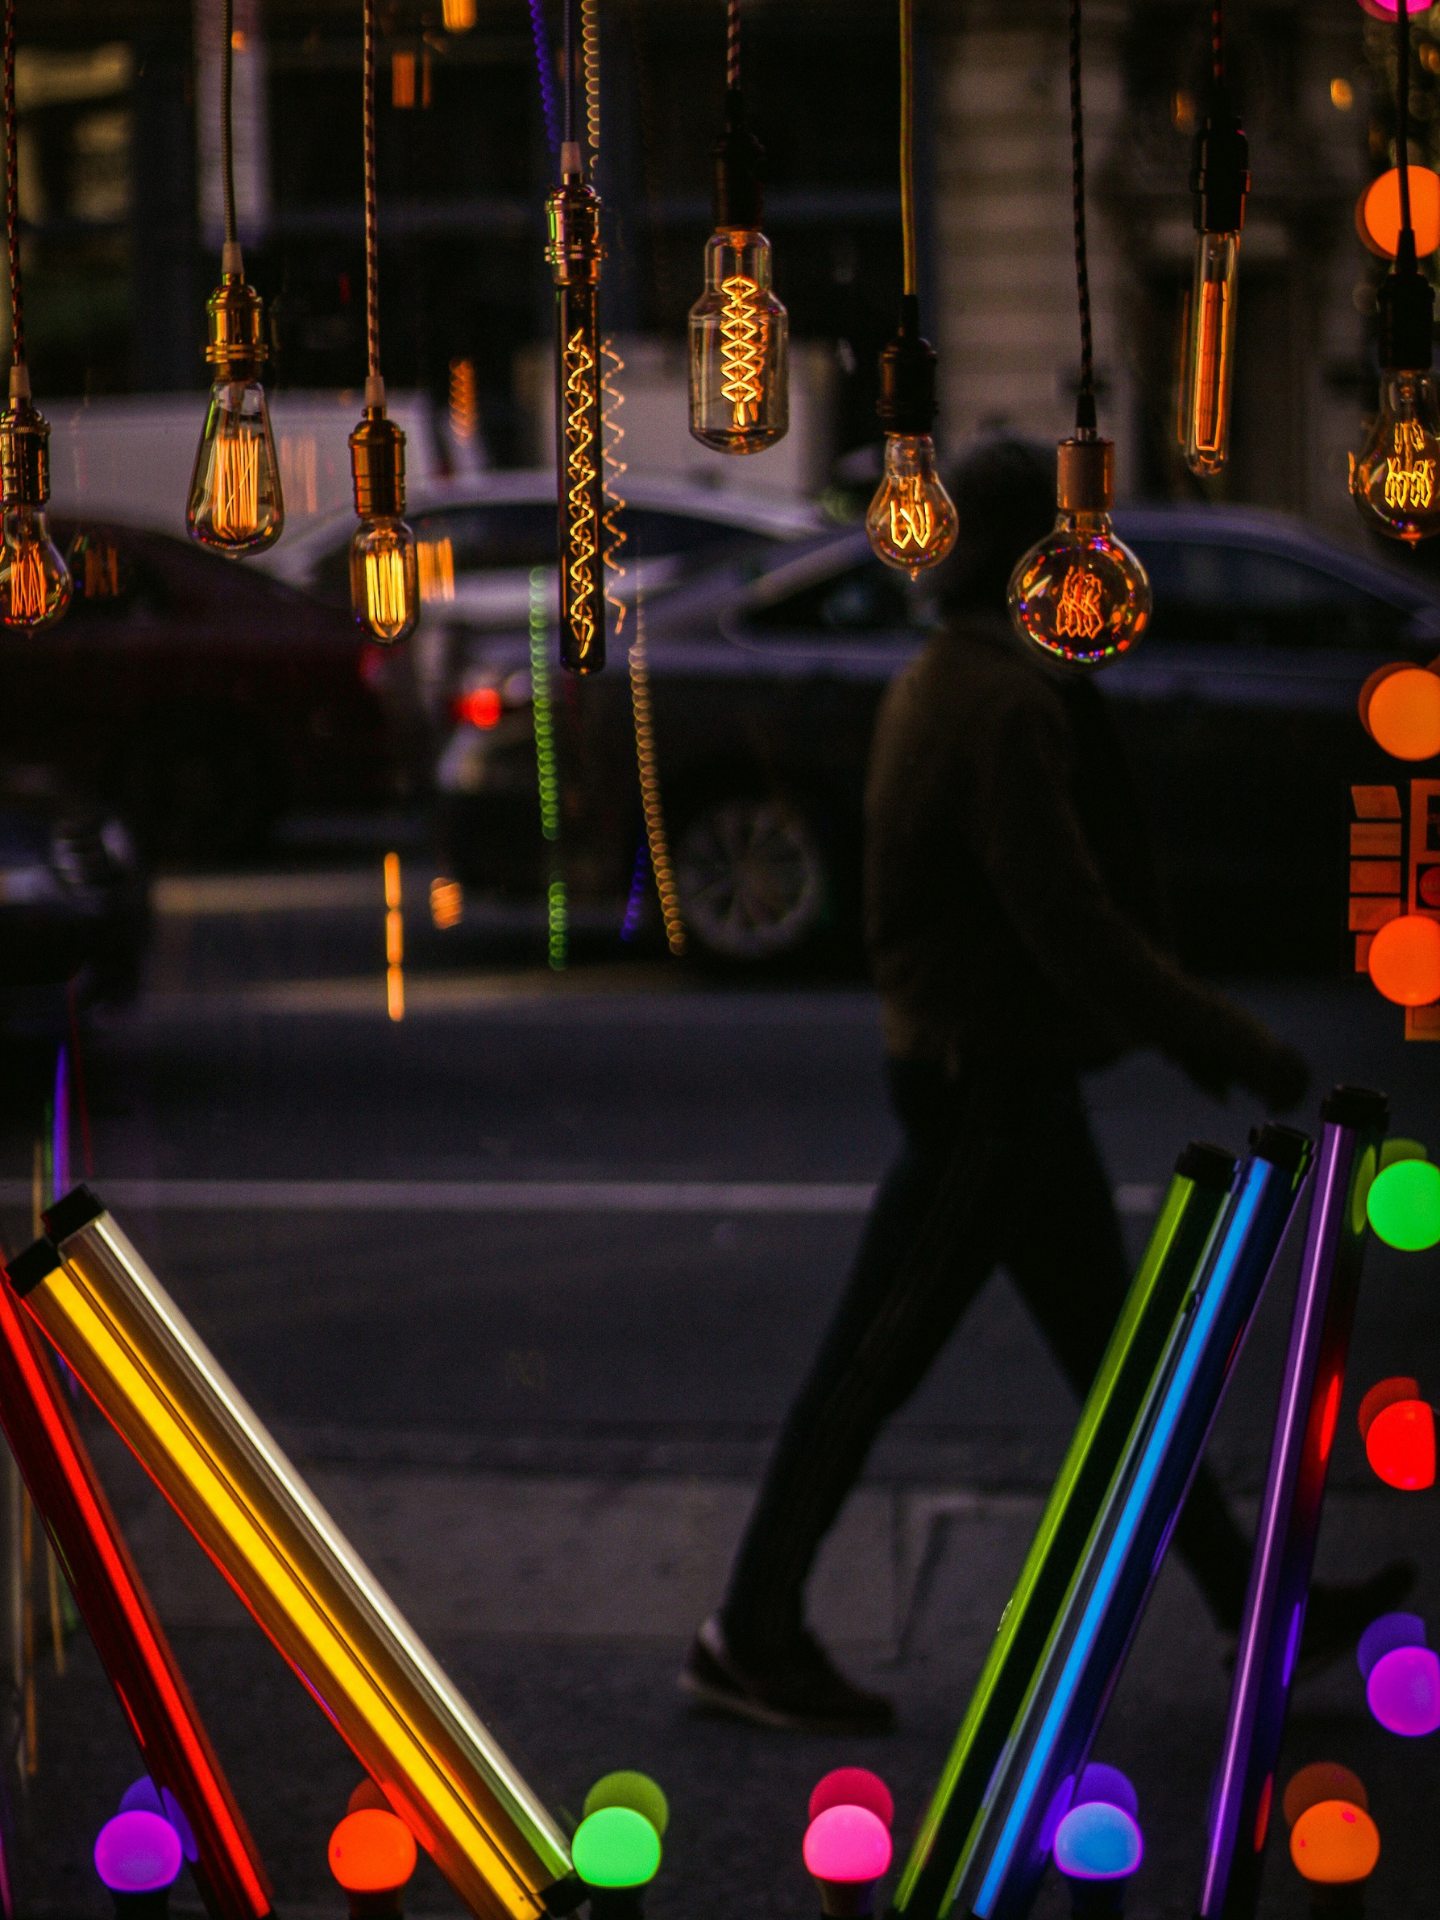 Man walking past colourful lighting shop display